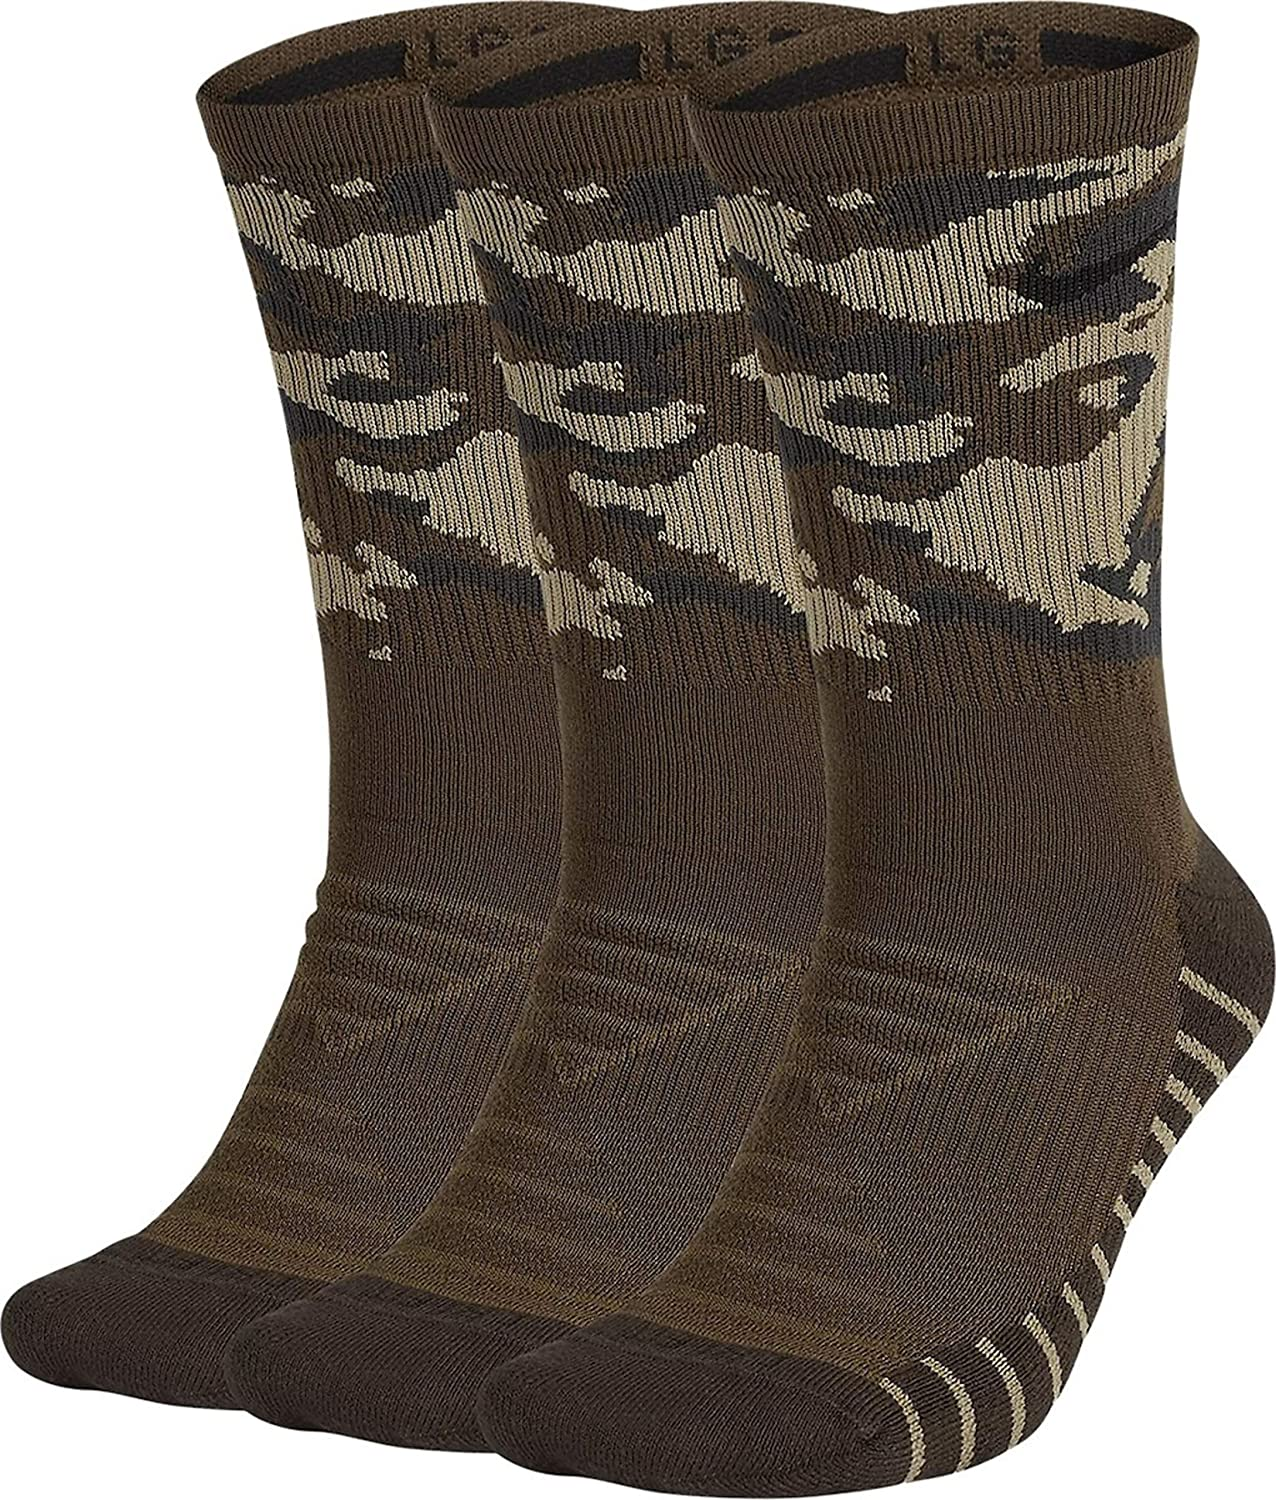 Nike Herren Socken Cushion Quarter 3er Pack